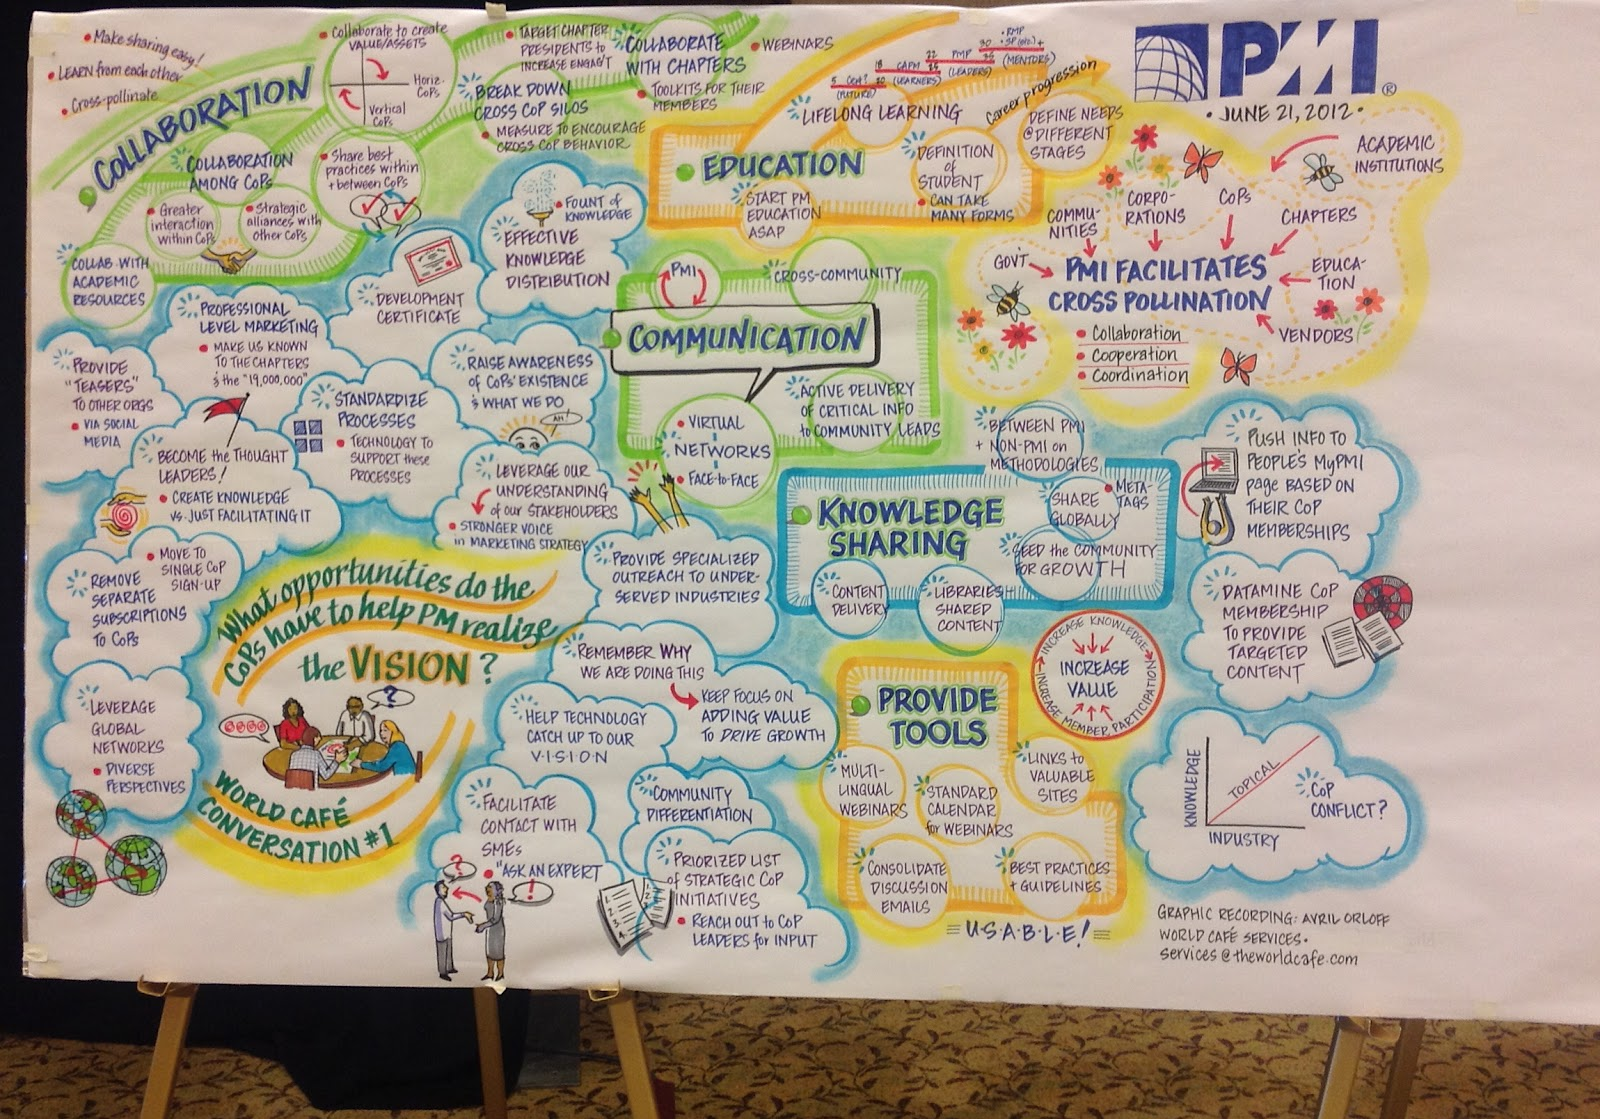 Mosaque produite lors du PMI leadership meeting